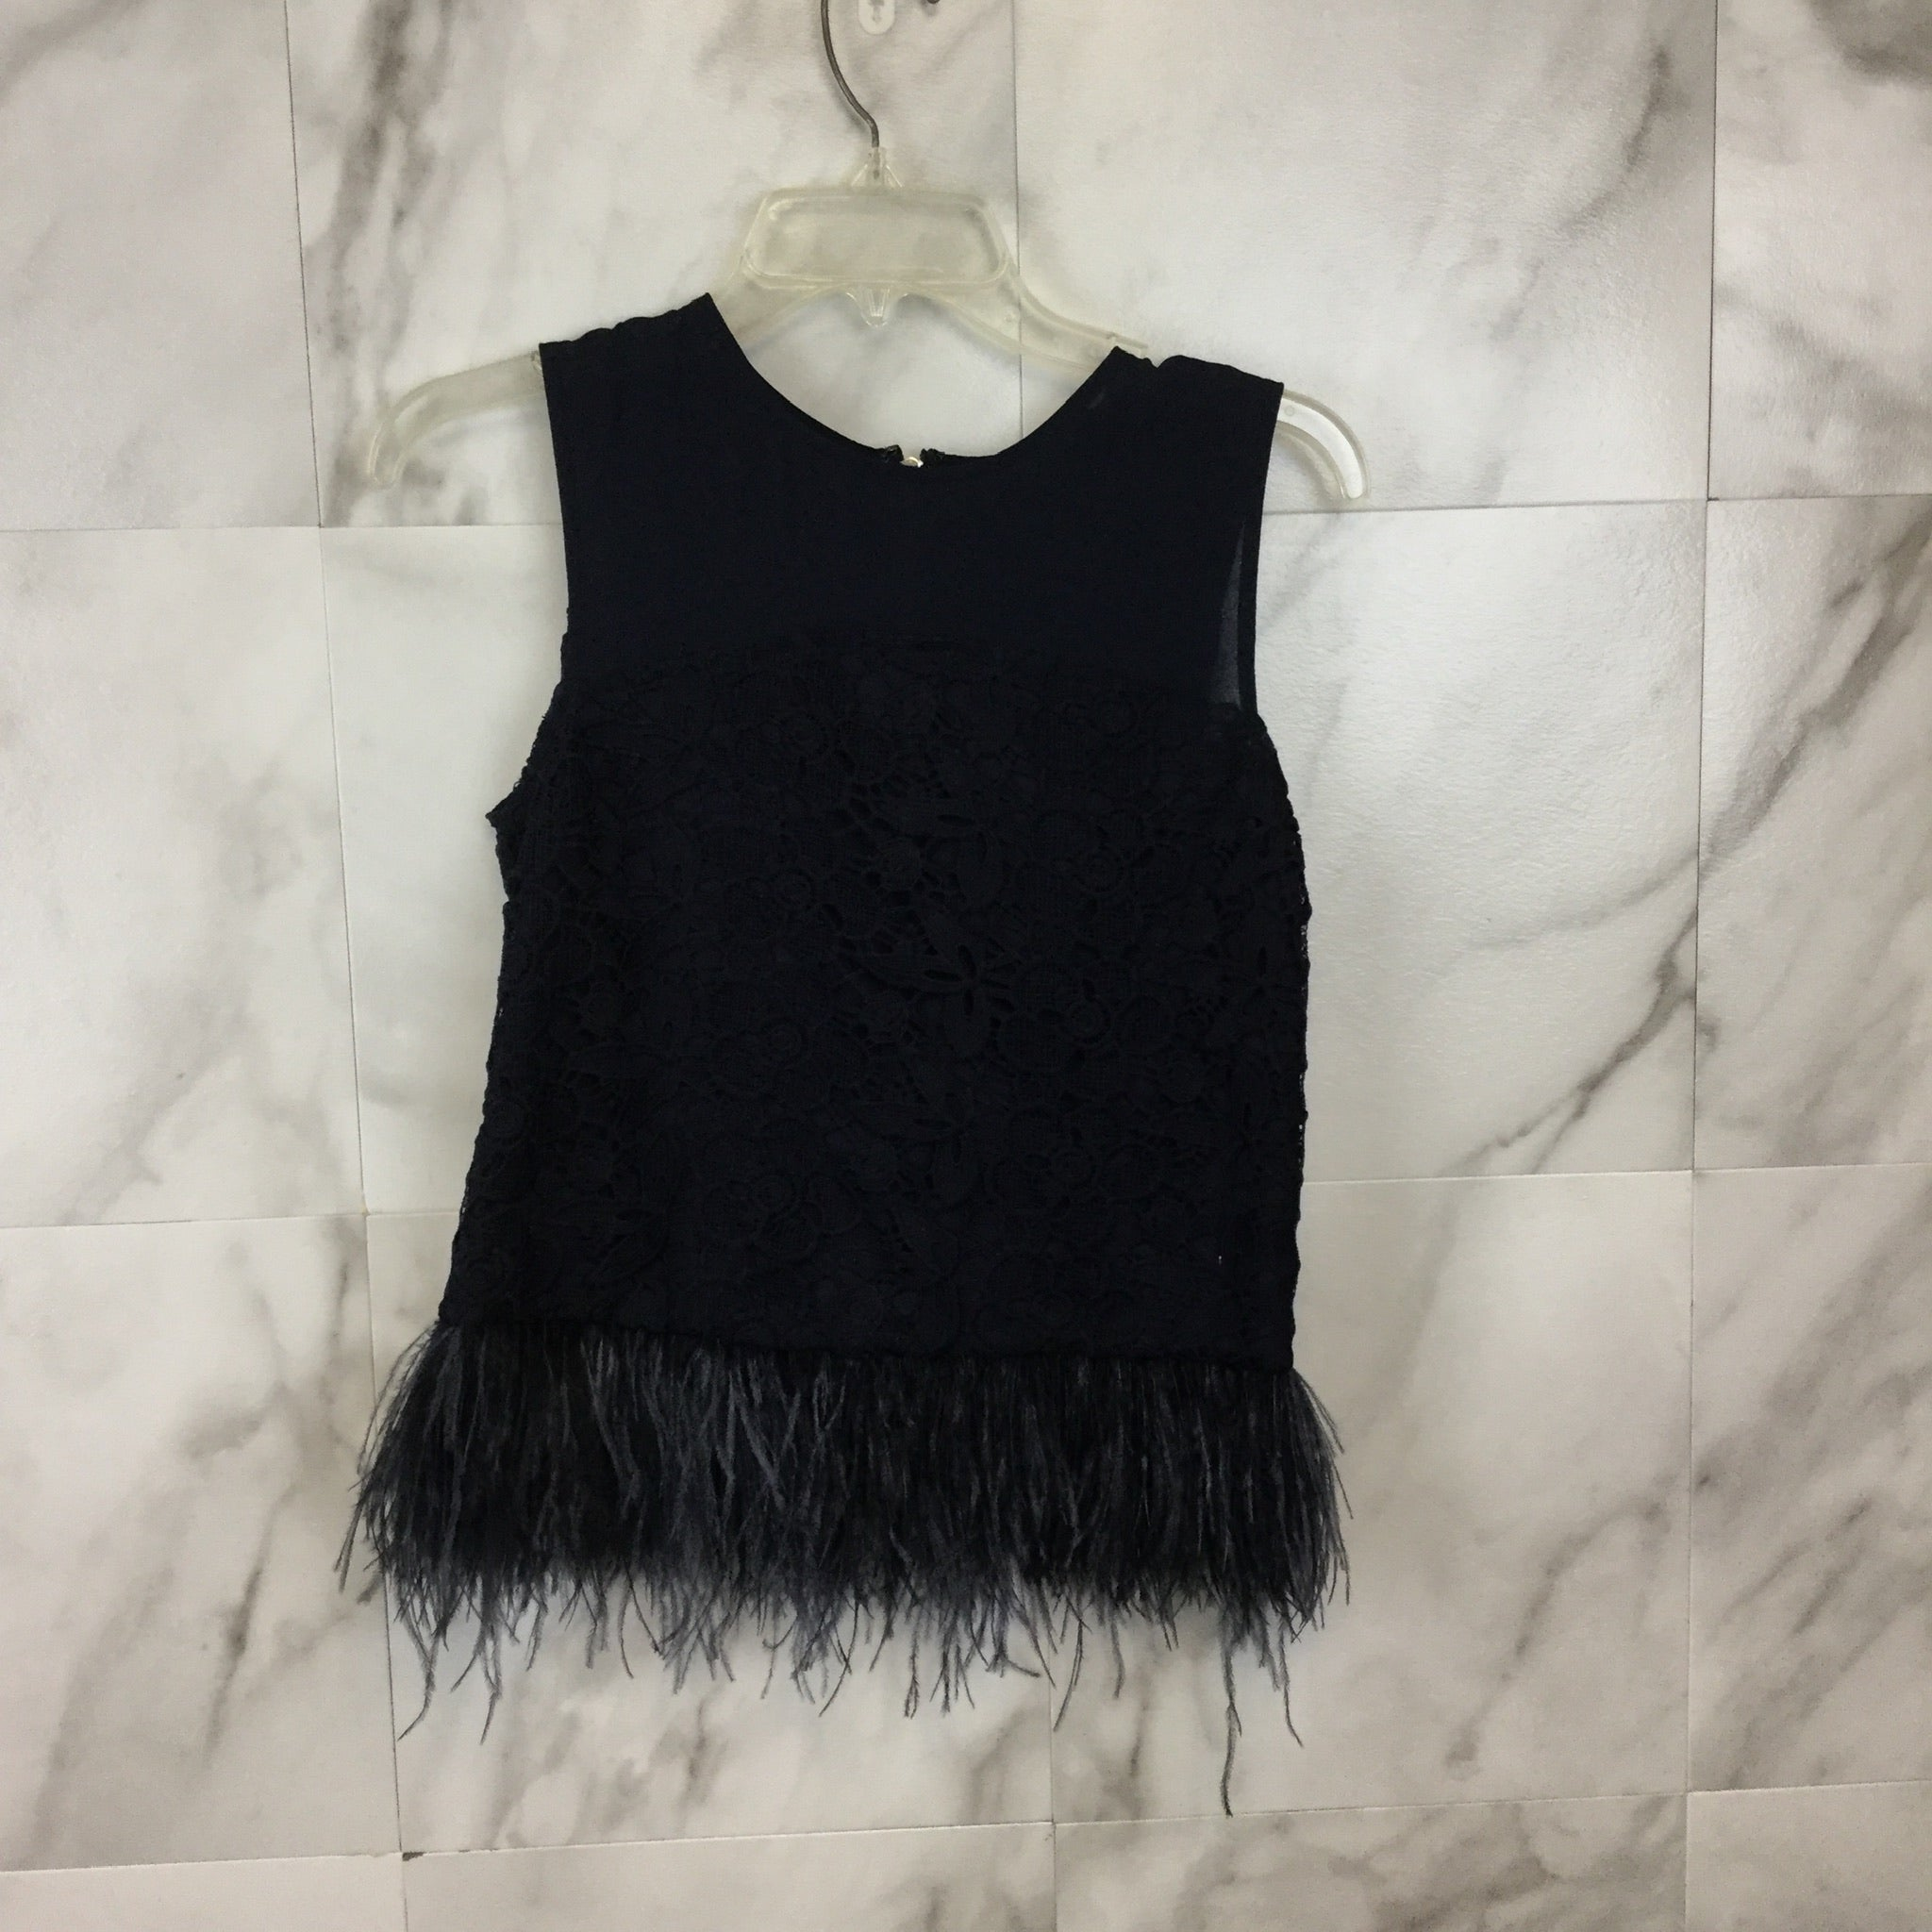 New! Anthropologie Greylin Feather Fringe Top - Size XS